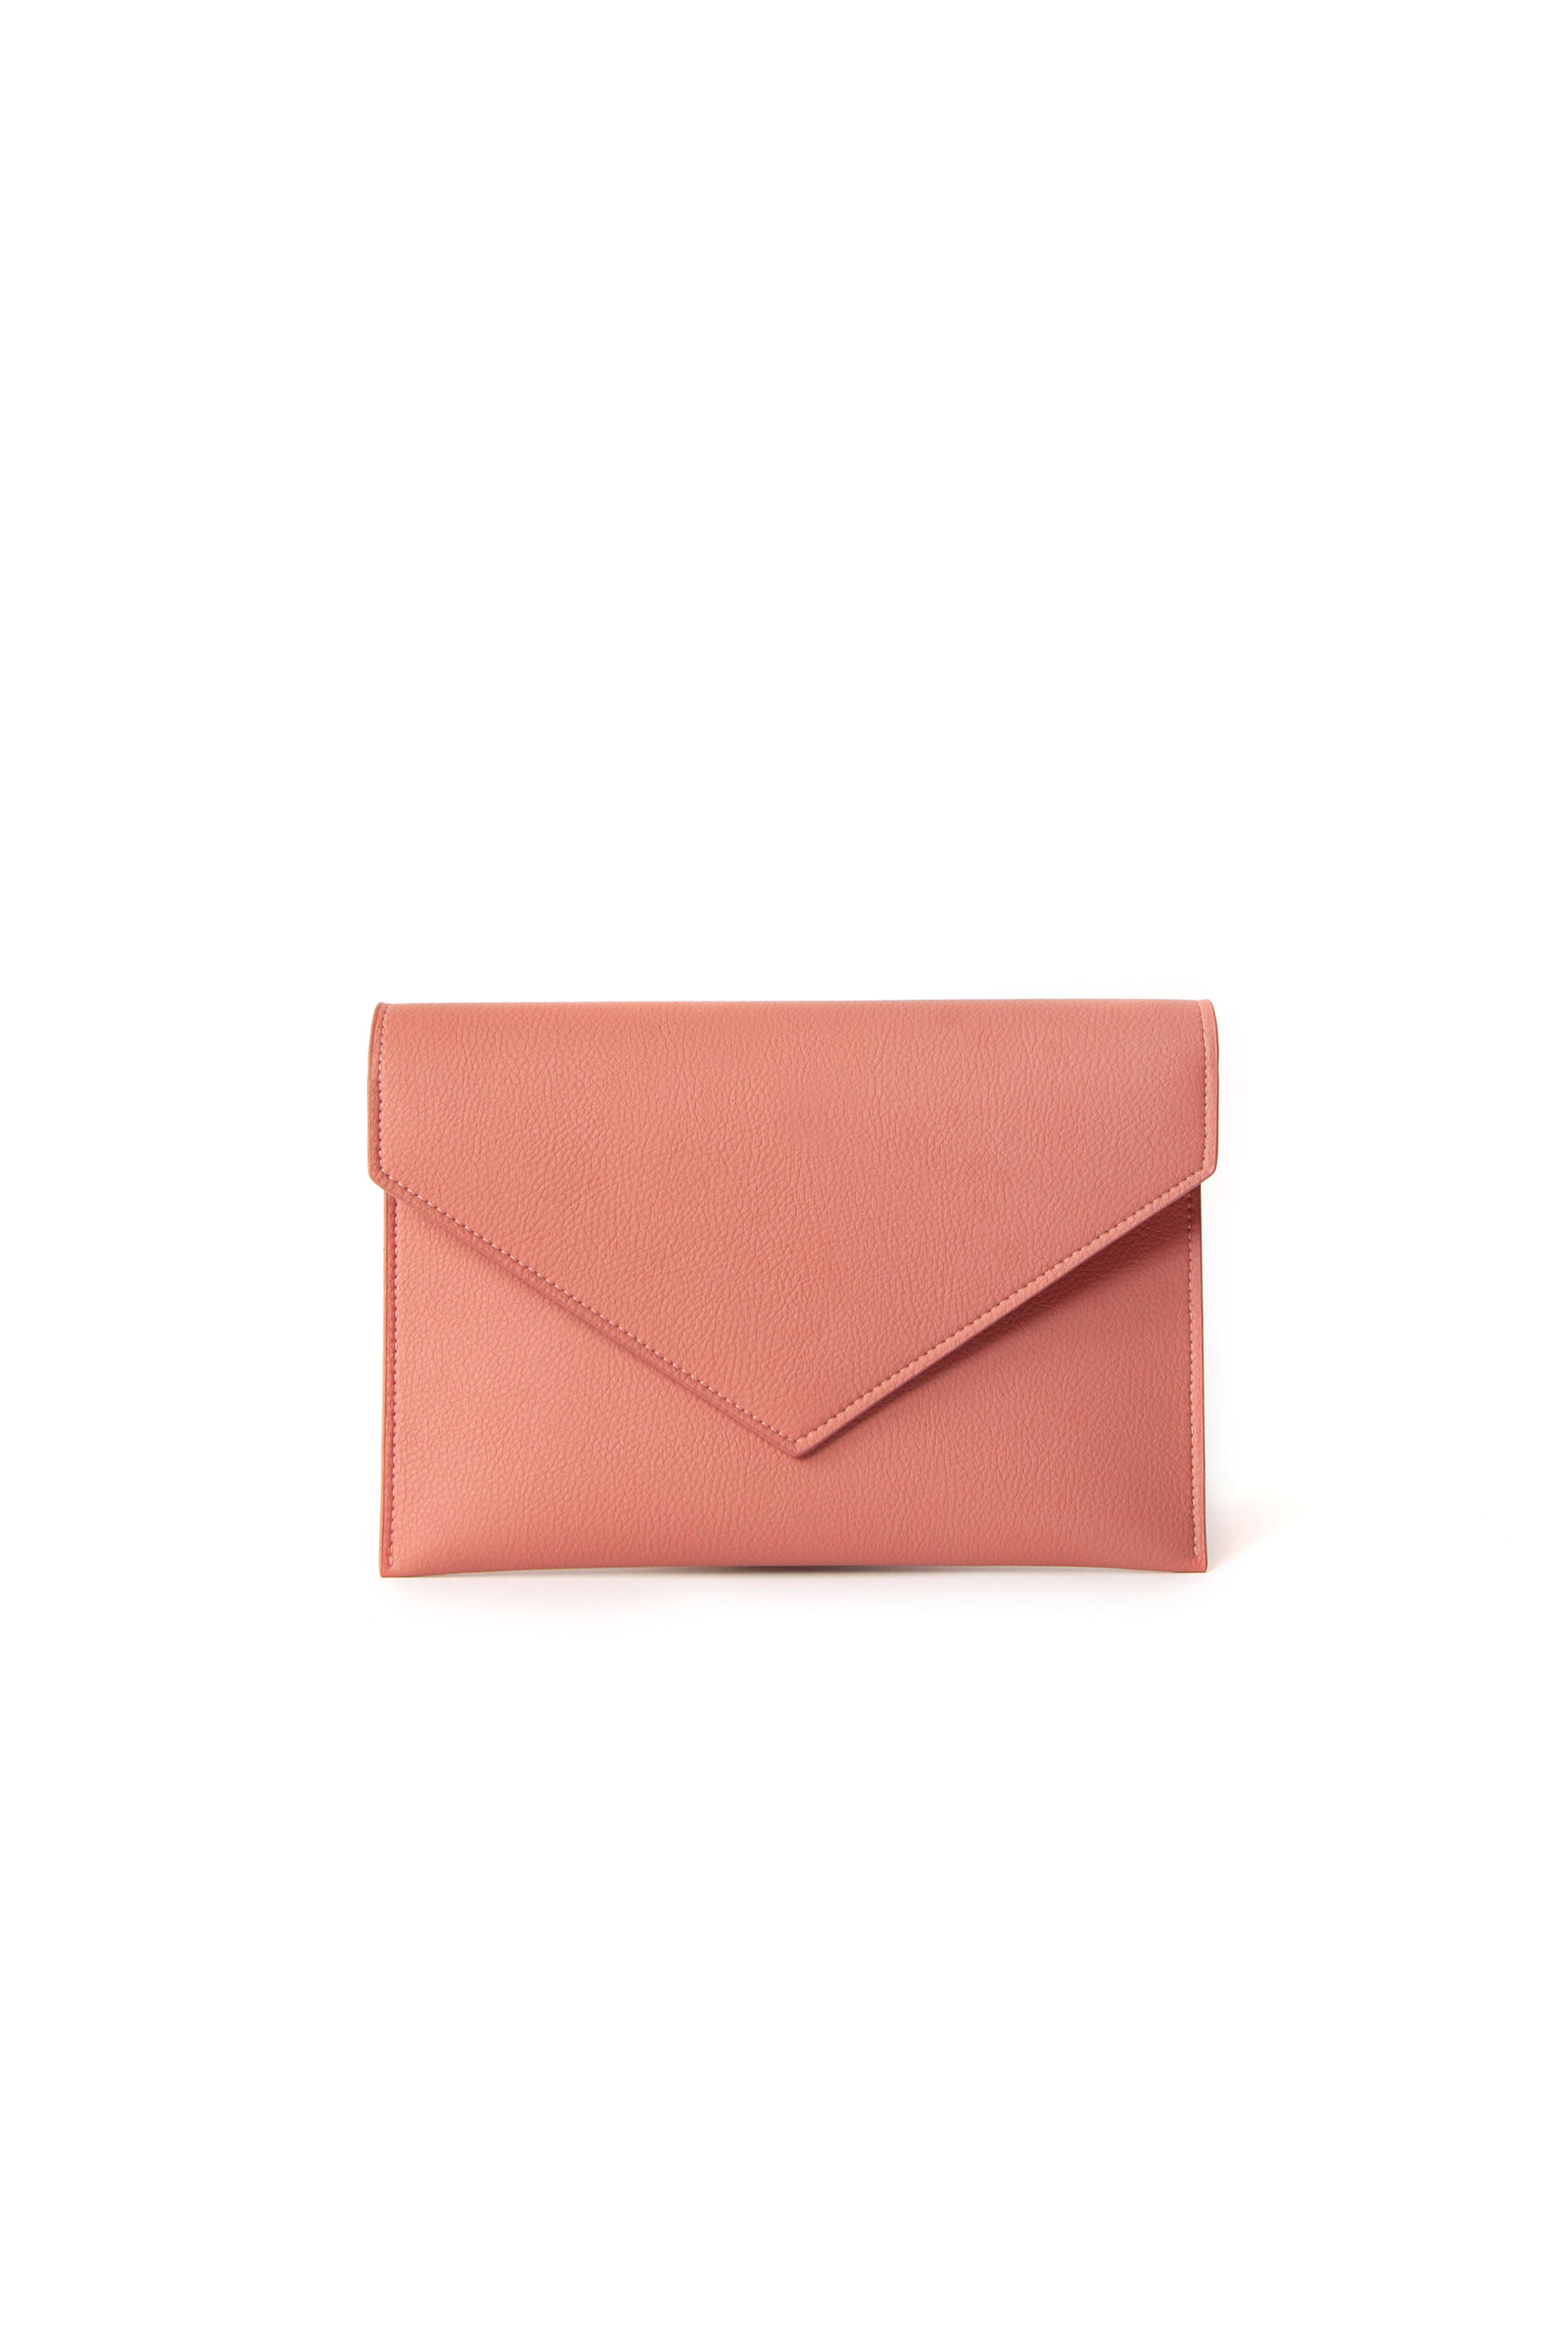 COSMETIC CLUTCH 44 Royal Pink